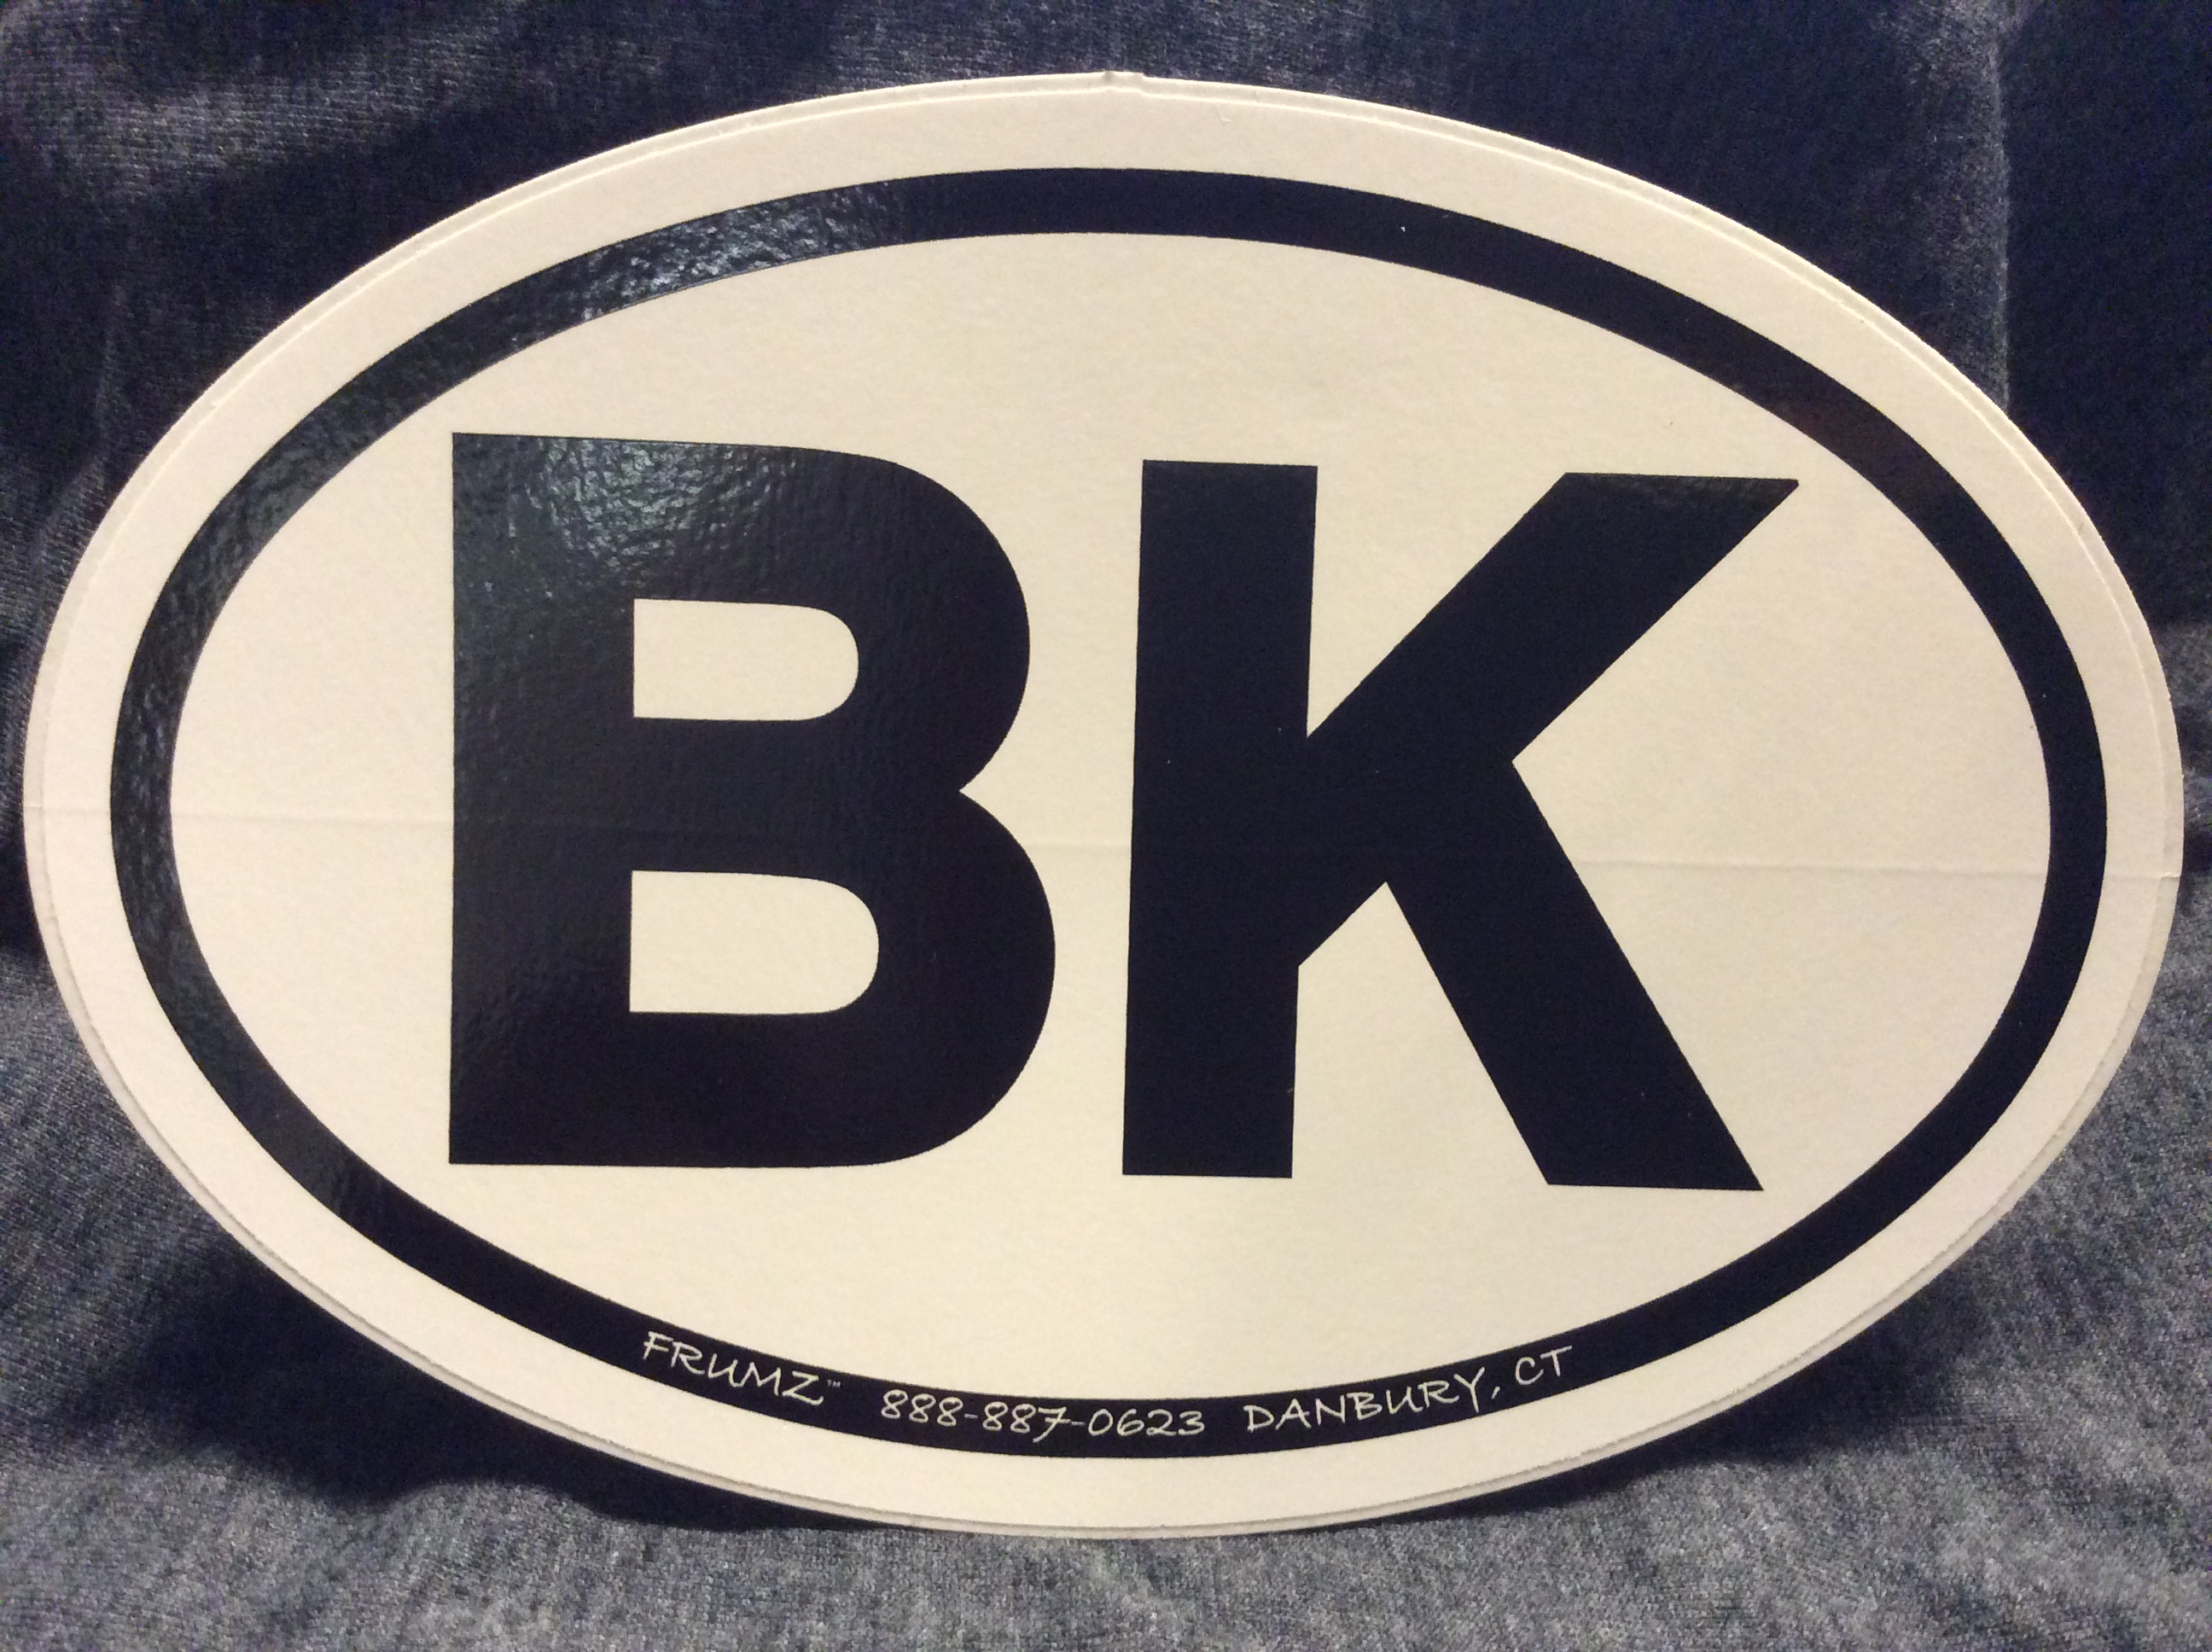 BK  oval sticker decal